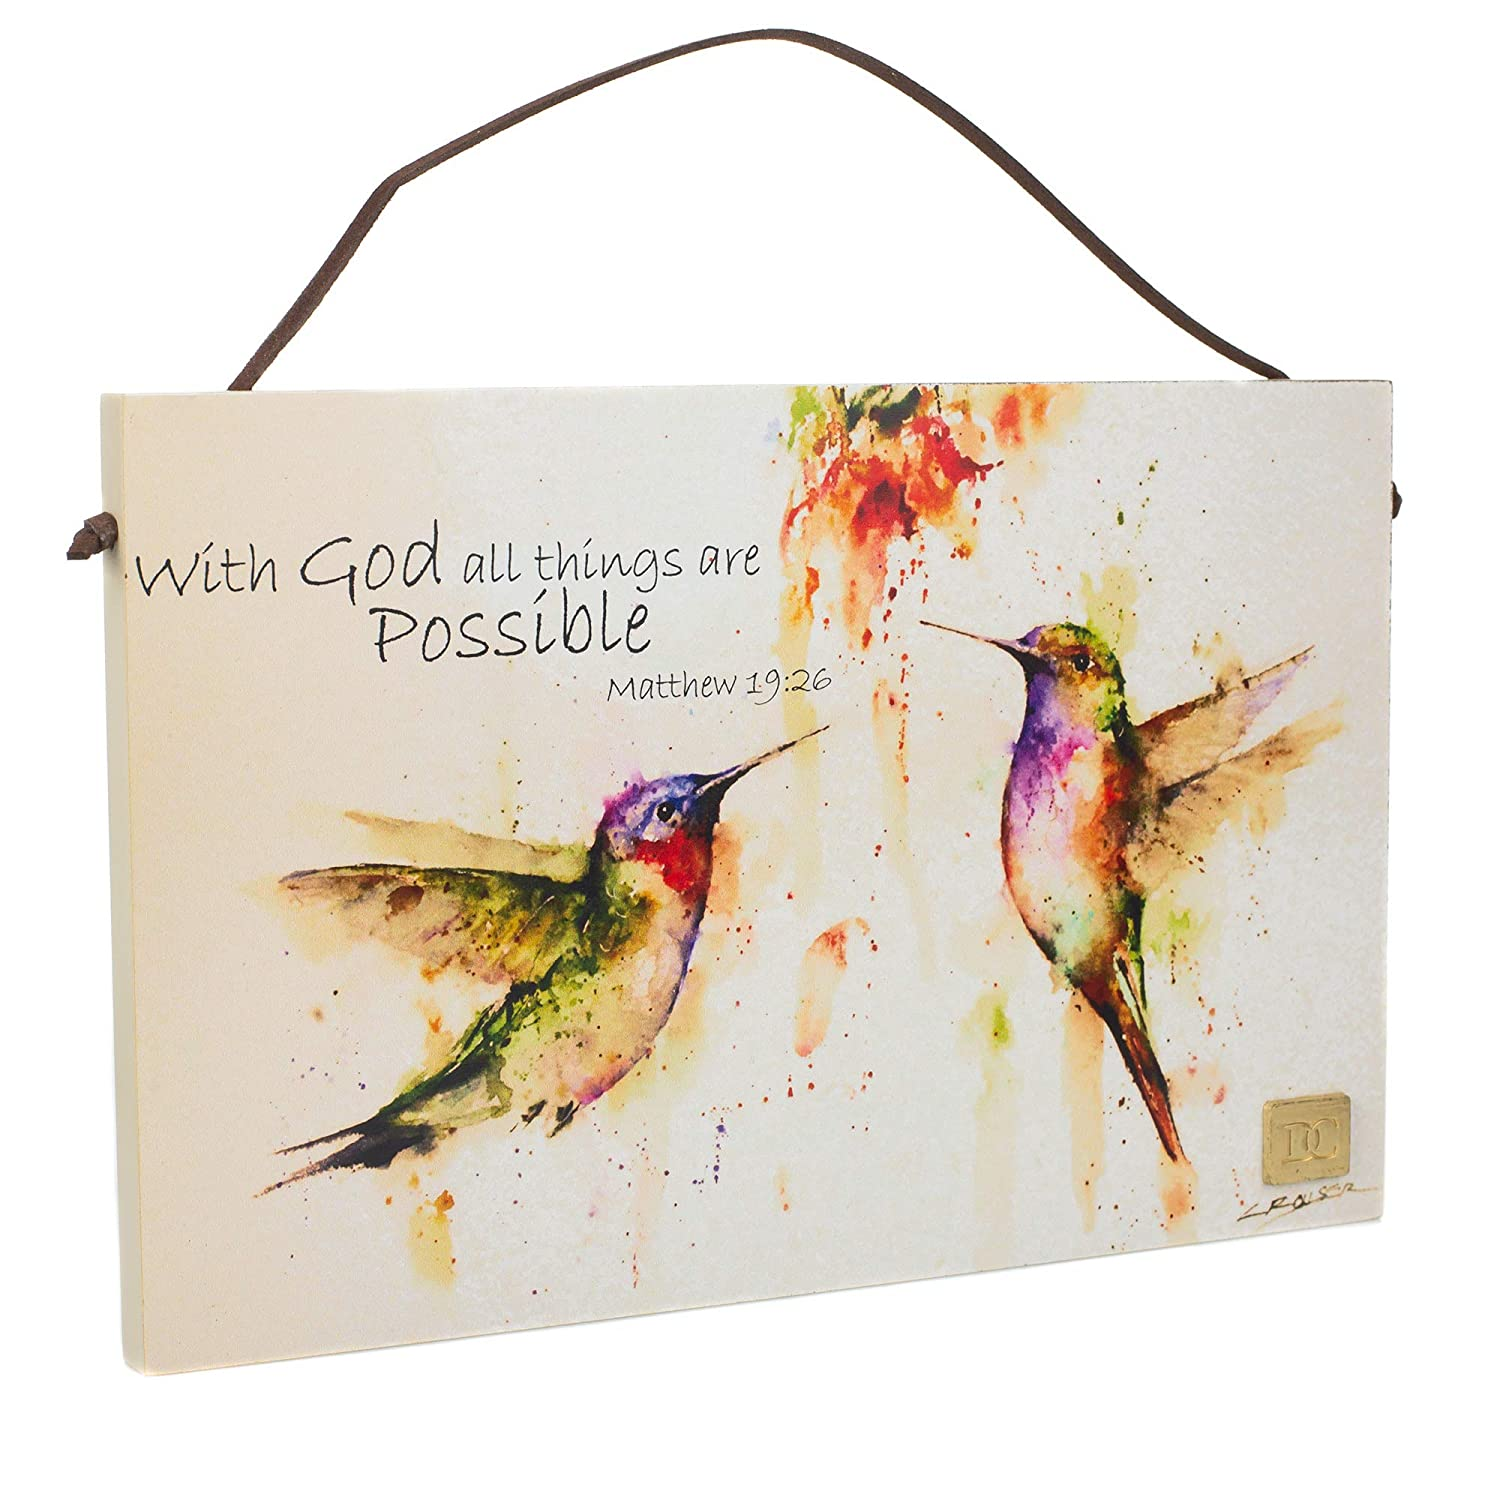 Hummingbird 10 x 6.5 Wrapped Canvas Inspirational Wall Art Plaque